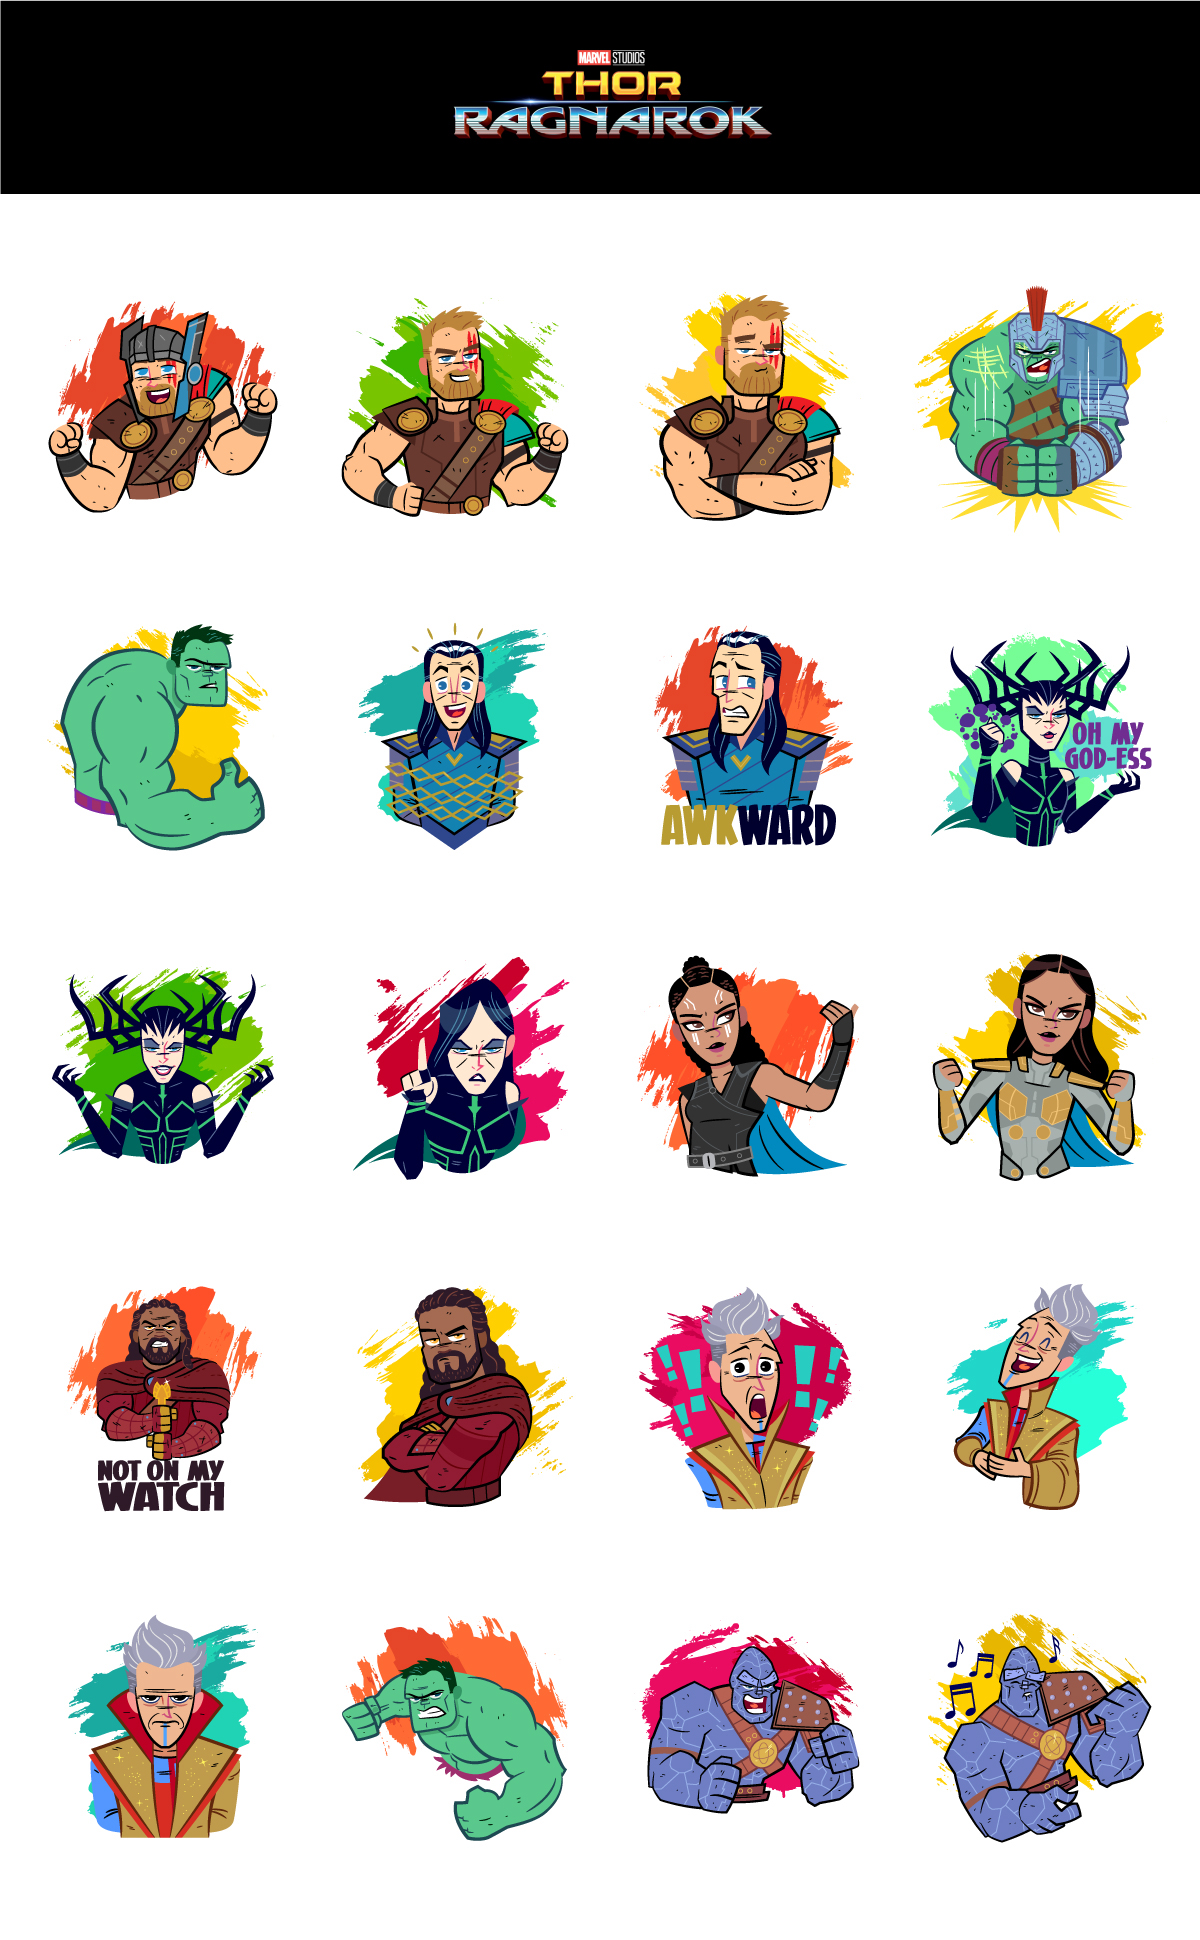 Cute Stickers For Facebook Thor Ragnarok Facebook Stickers On Behance